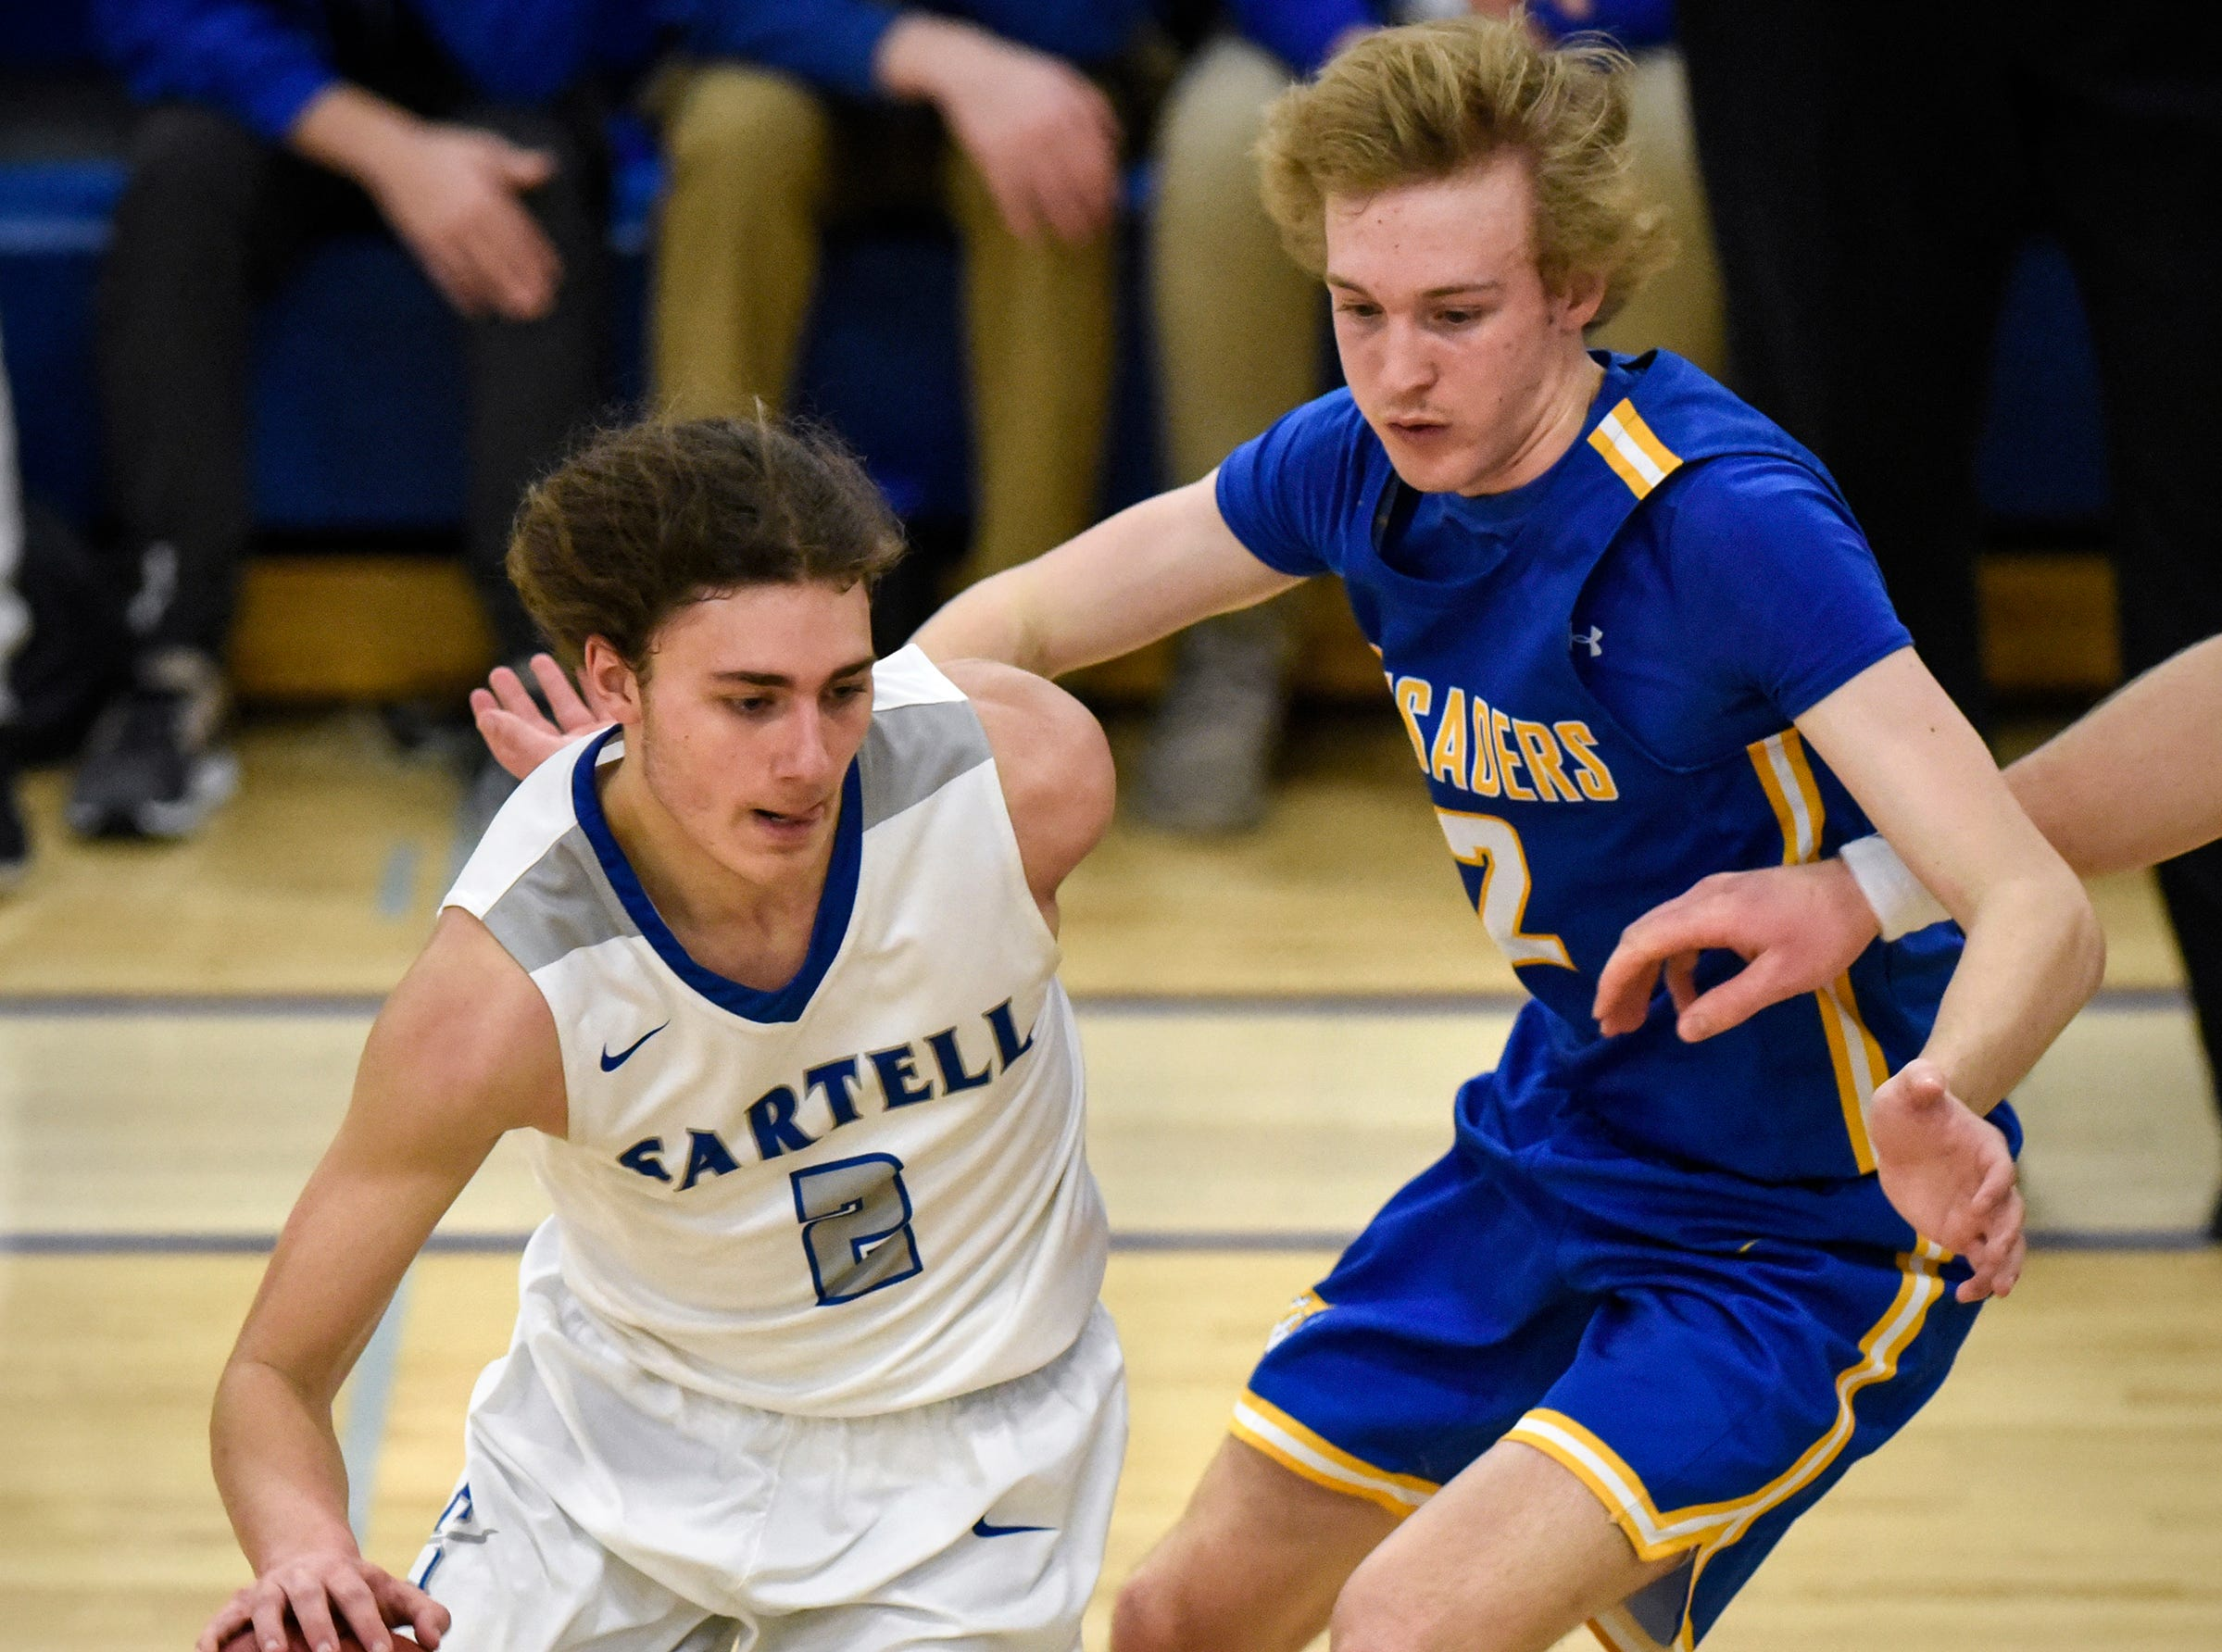 Sartell's Matt Sieben drives to the basket against Andrew Weisser of Cathedral during the game Tuesday, Jan. 8, at Cathedral High School in St. Cloud. Sartell won 75-71. Visit www.sctimes.com/sports to see more photos from the game.